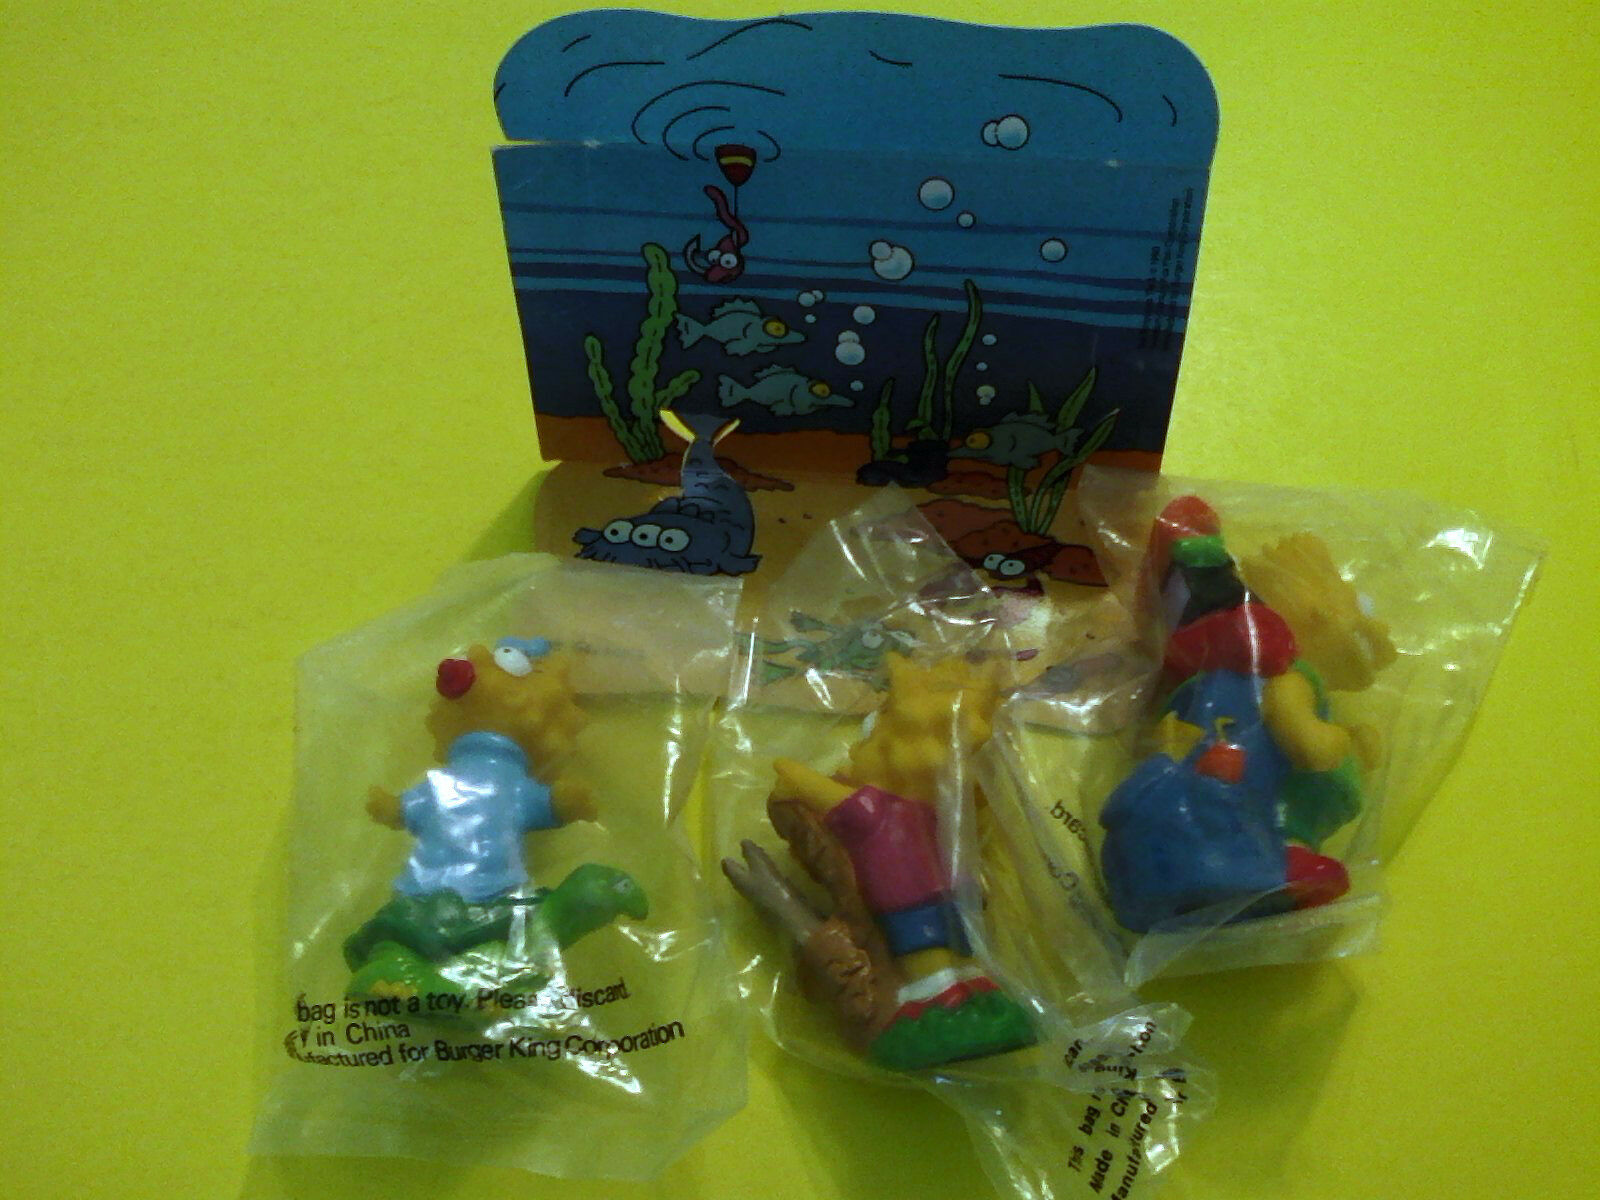 THE SIMPSONS Jahr NEW HERMETICALLY SEALED TV CARTOON CHARACTERS SpielzeugS   Kinder